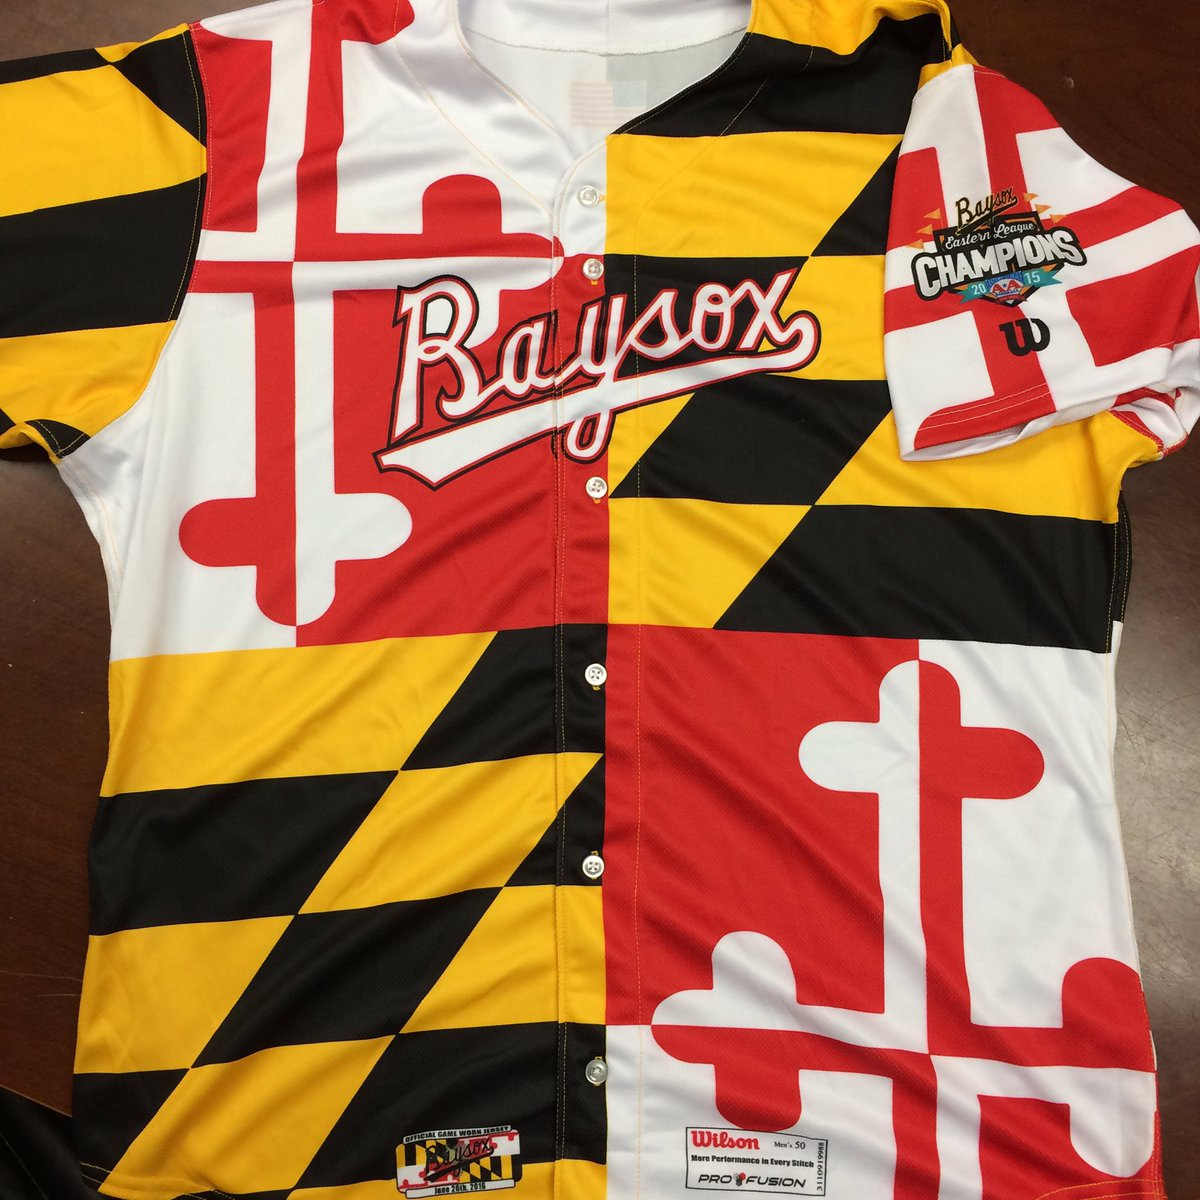 The Baysox will show some serious Maryland Pride with these special jerseys during the game Sunday, June 26 https://t.co/6nHsDmbuYG